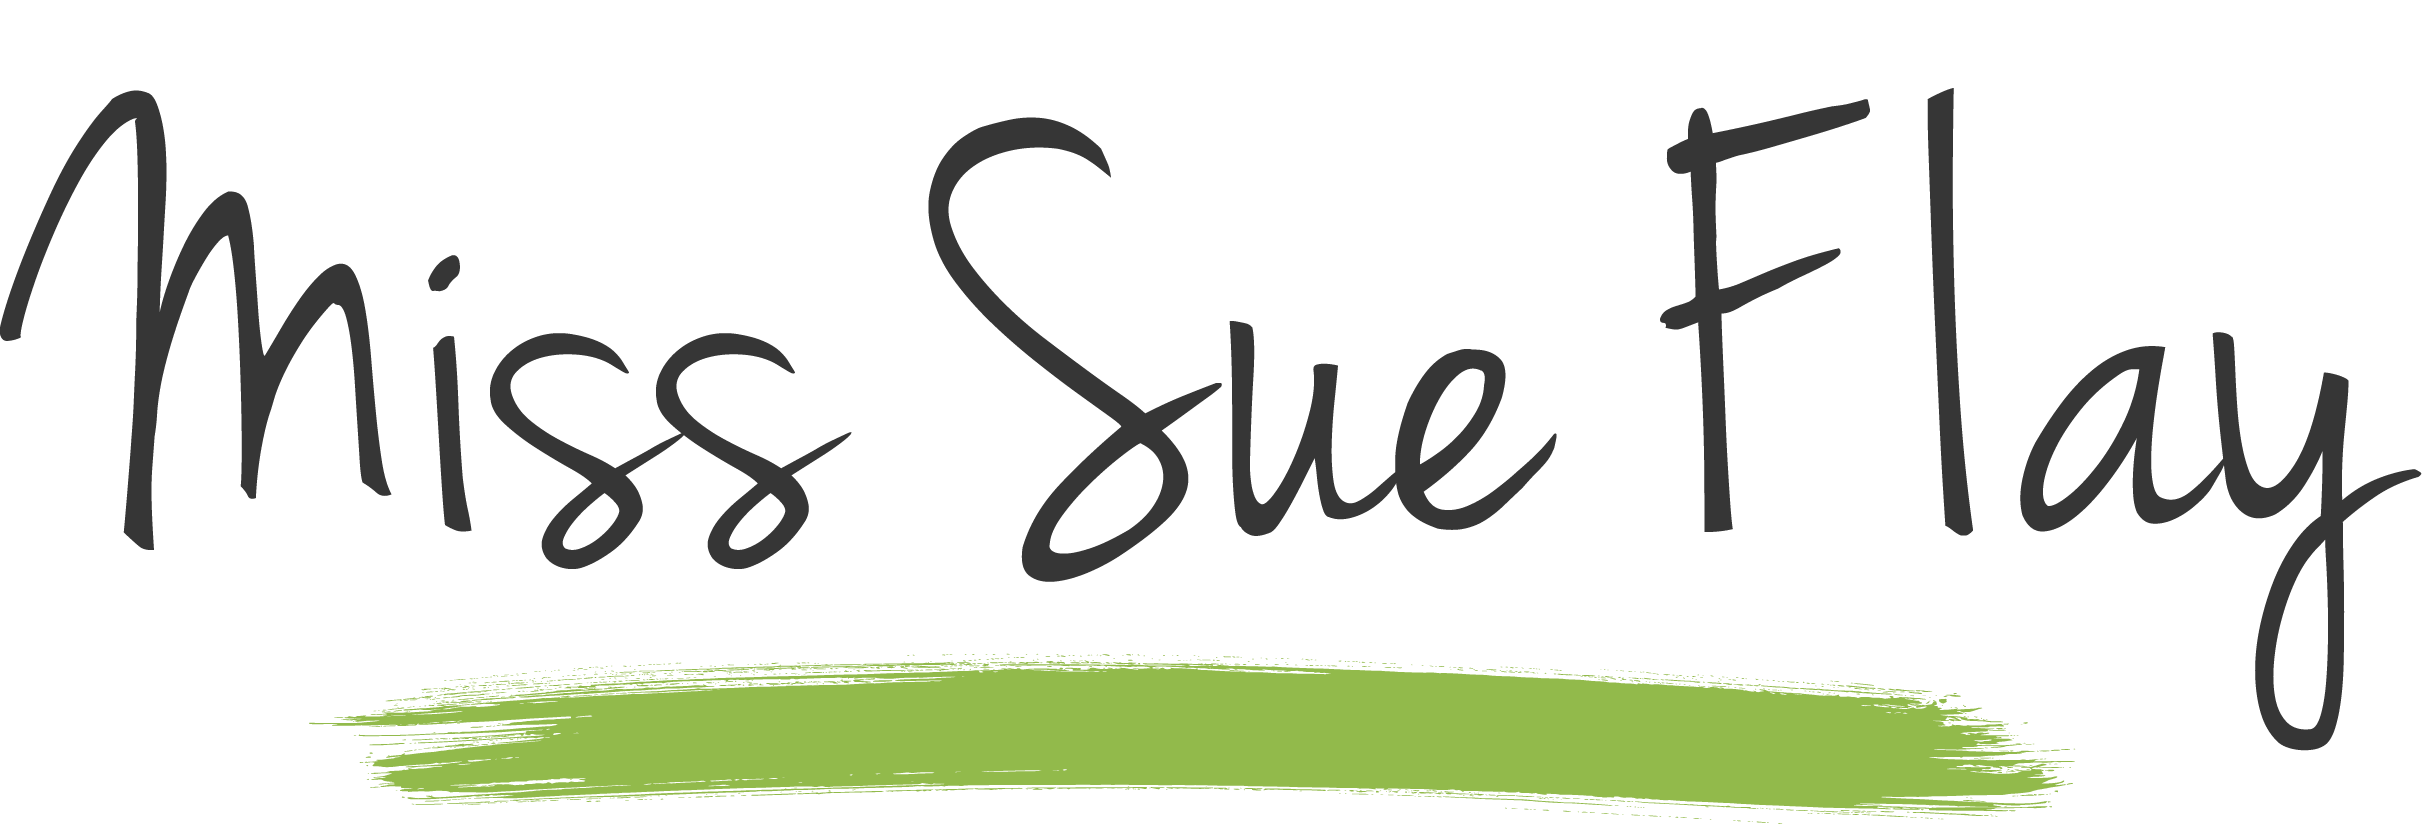 MSF Miss Sue Flay logo Green Brush